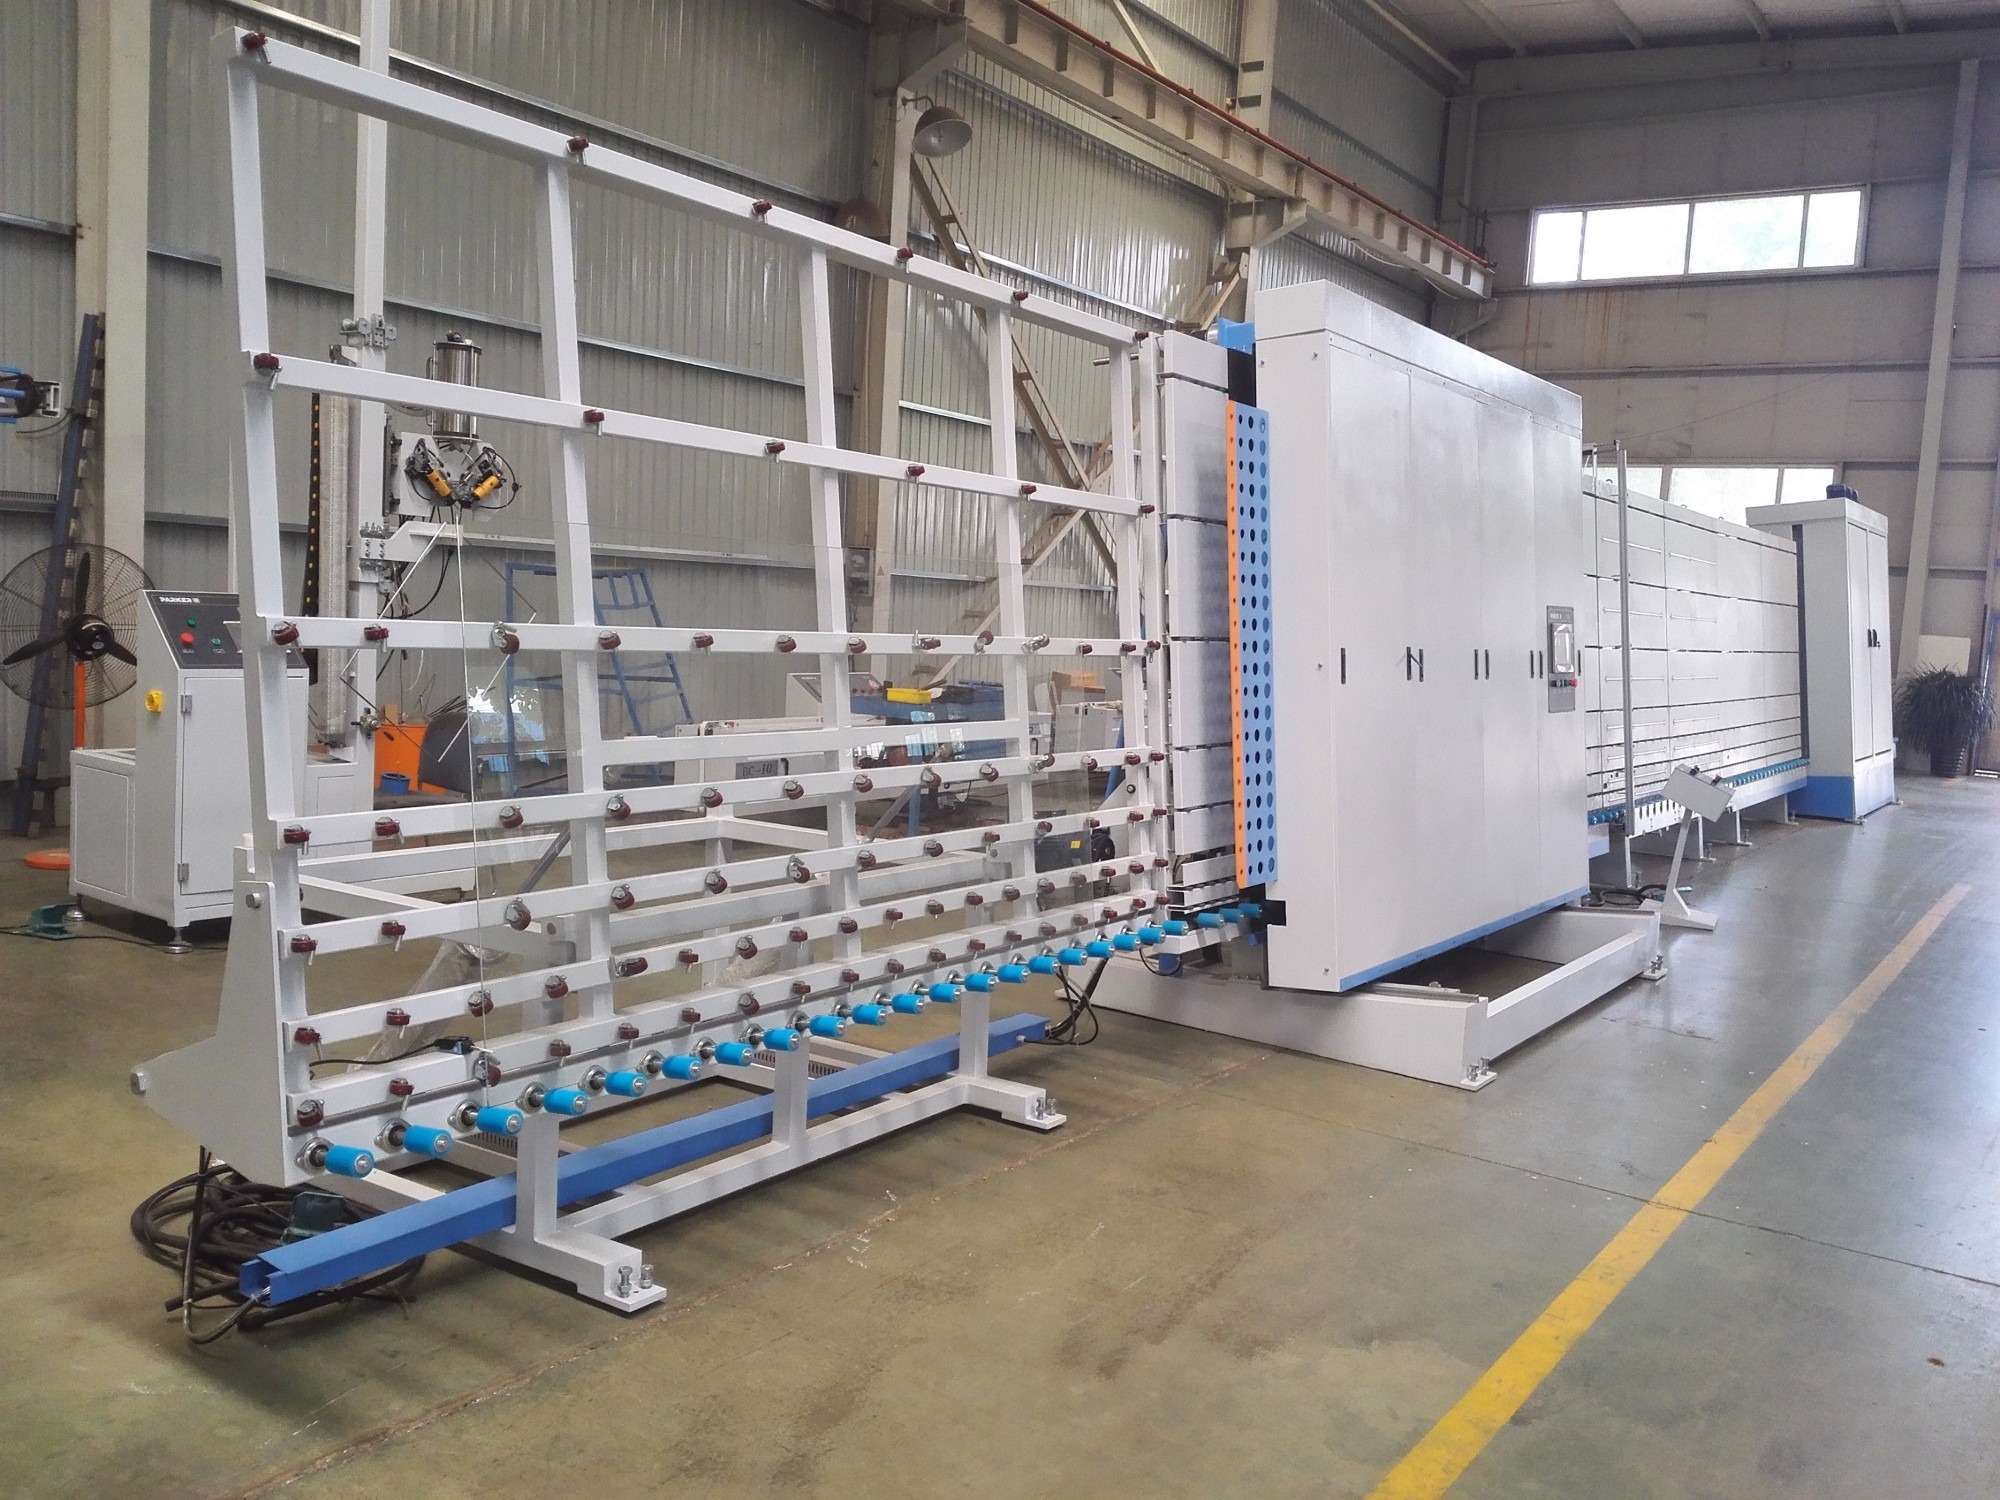 High quality Vertical Insulating Glass Produce Line Quotes,China Vertical Insulating Glass Produce Line Factory,Vertical Insulating Glass Produce Line Purchasing